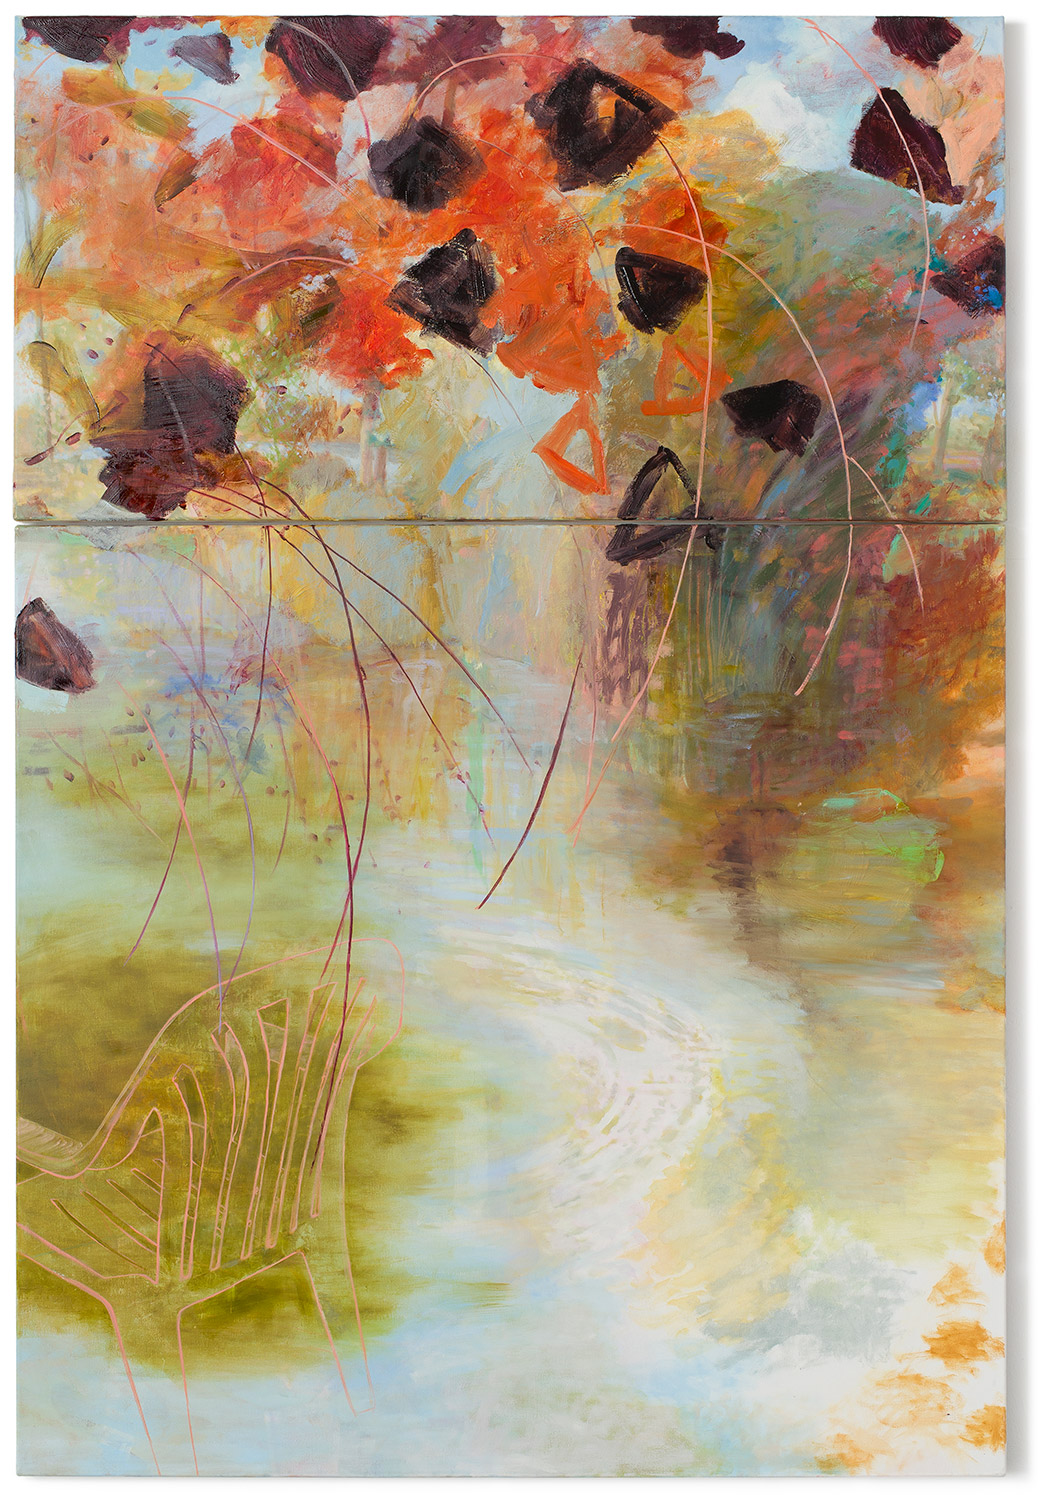 The Temperature of the Air V   Upper panel: 29 × 57 inches 73.7 × 144.8 cm Lower panel: 55 × 57 inches 139.7 × 144.8 cm Total dimensions: 85 × 57 inches 215 × 146 cm Oil on canvas 2013